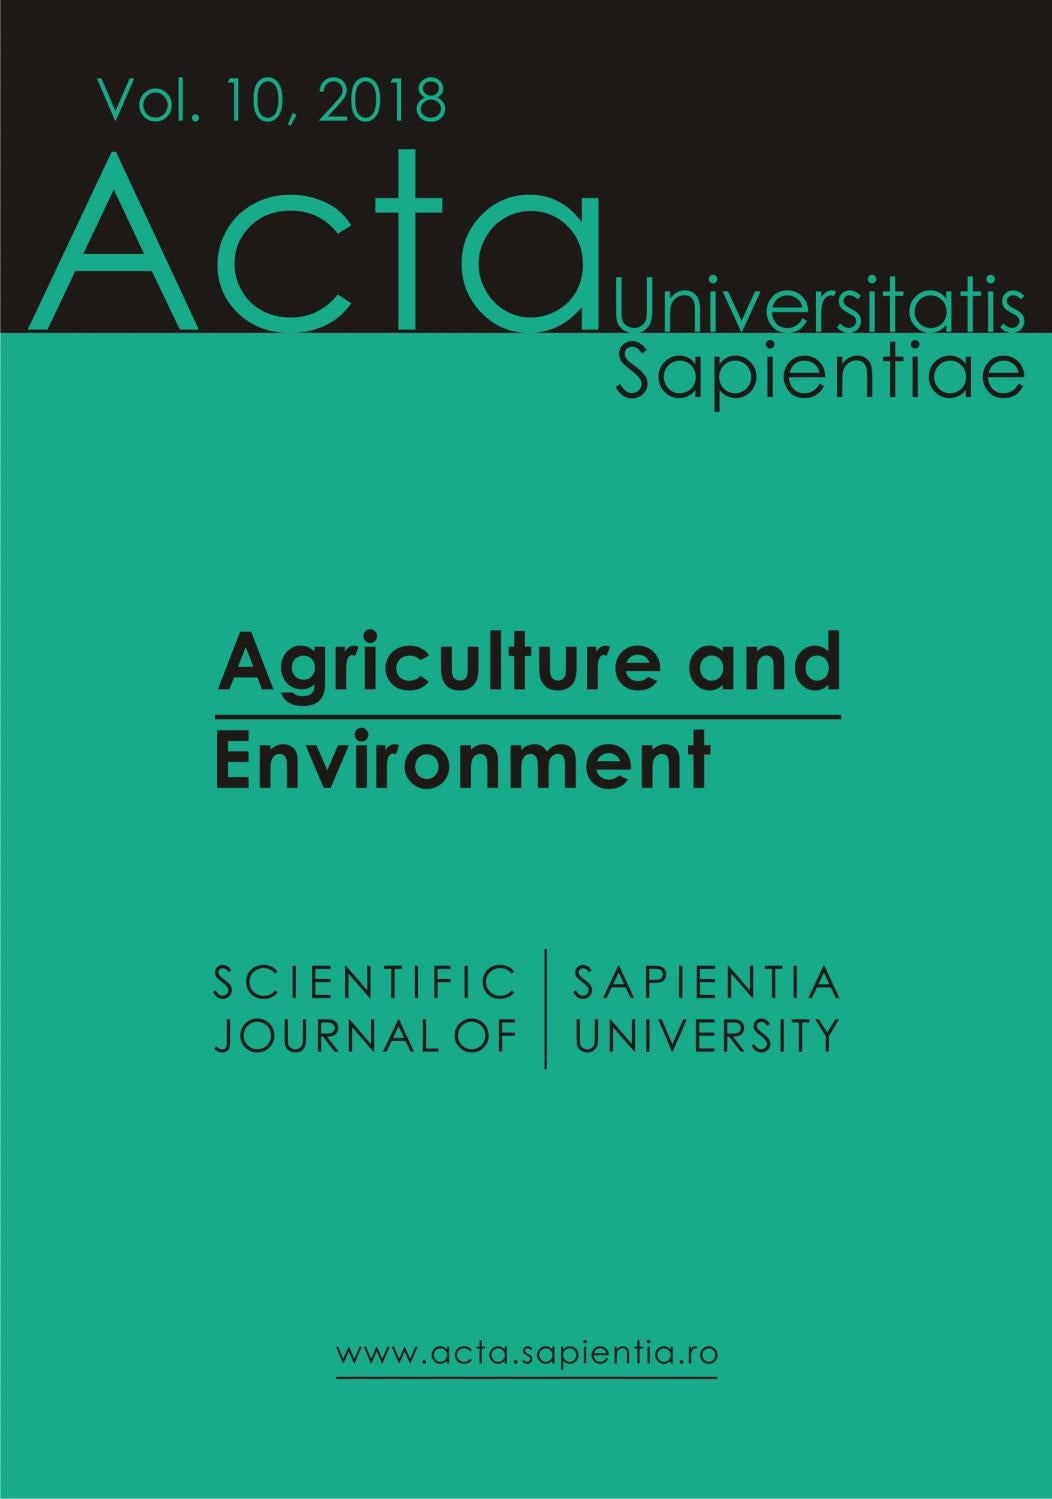 Agriculture And Environment Vol 10 2018 By Acta Universitatis